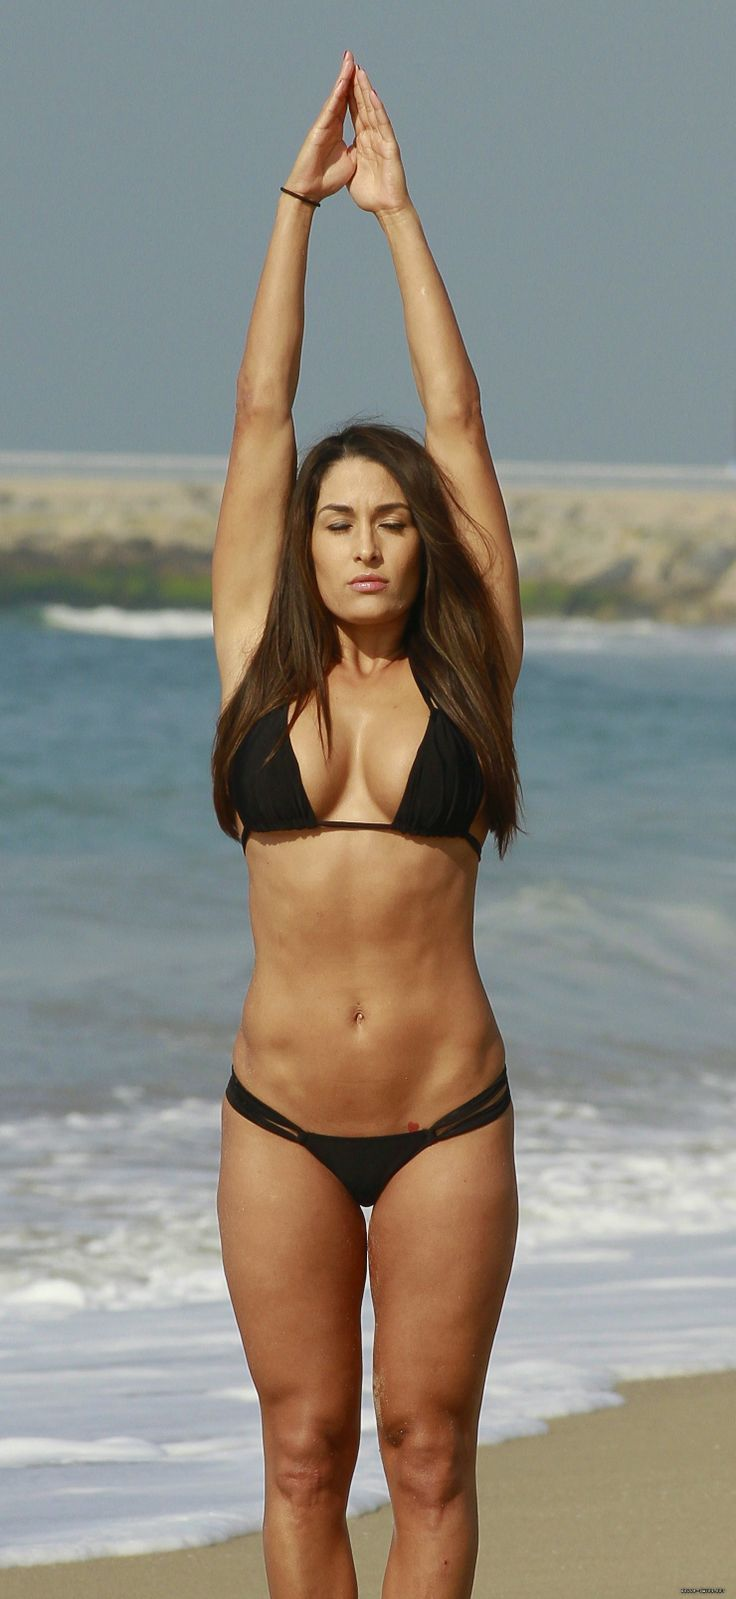 Brie Bella hot bikini look